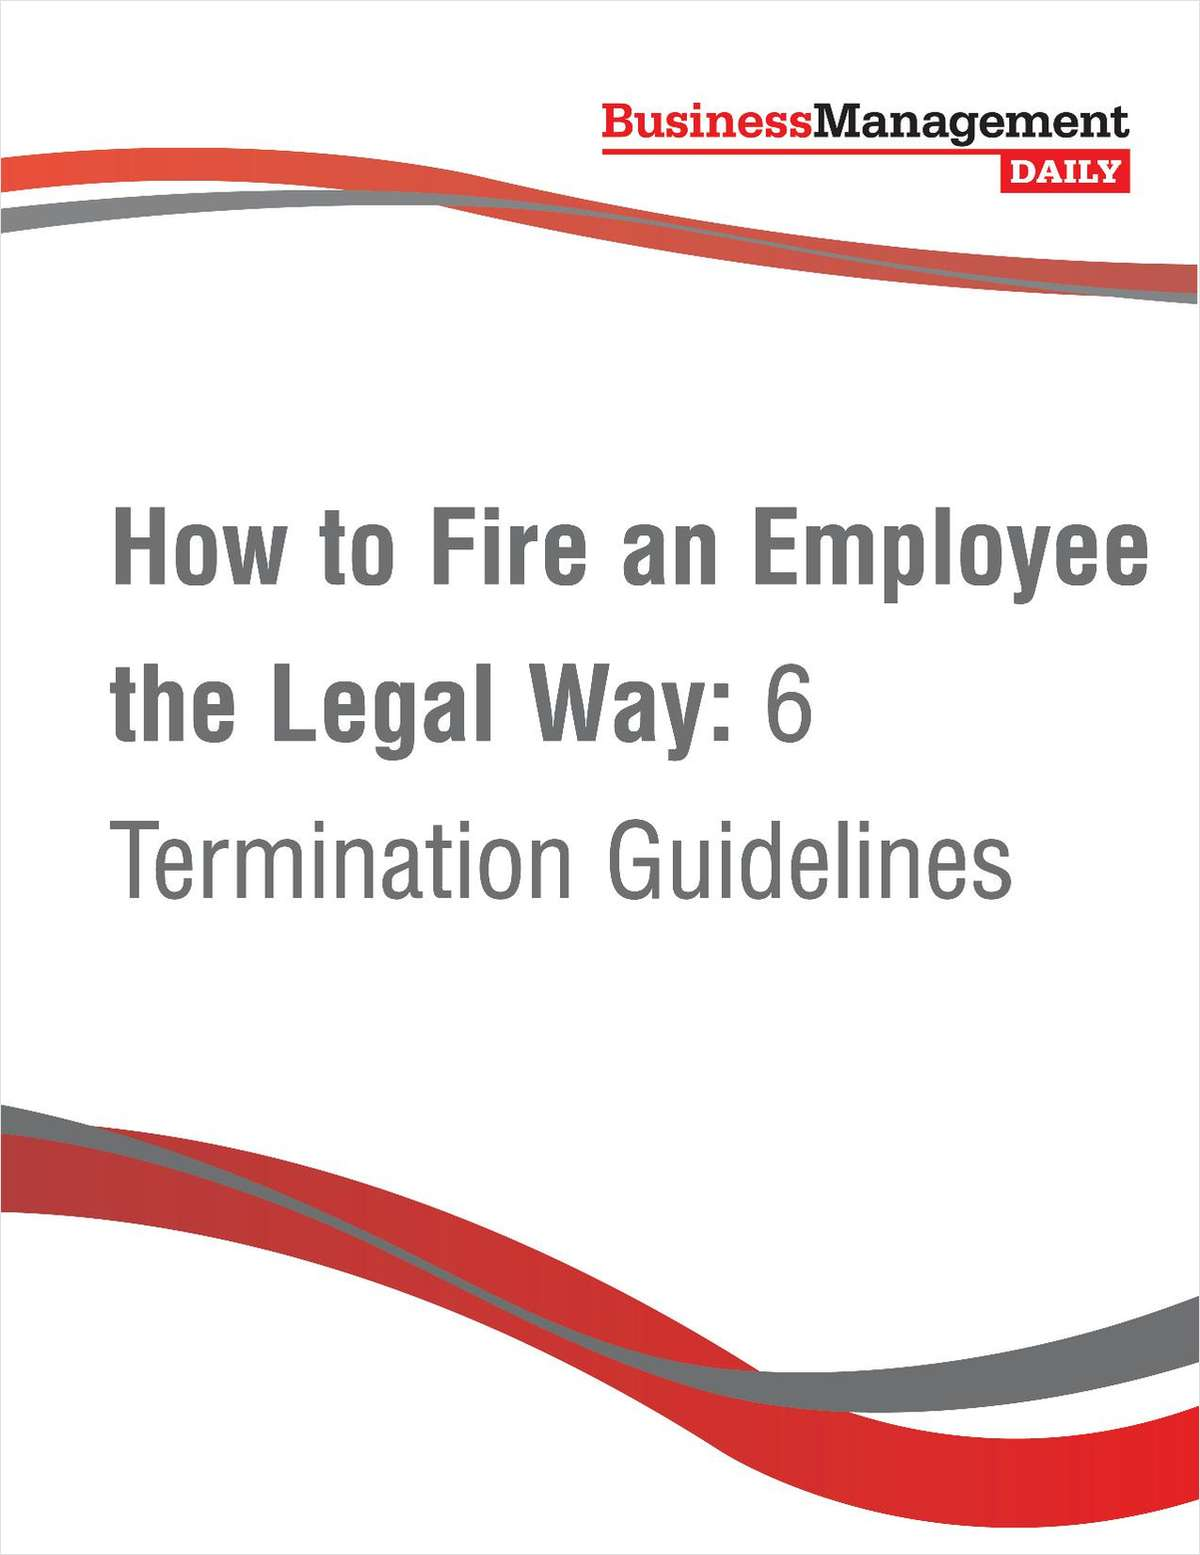 How to Fire an Employee the Legal Way: 6 Termination Guidelines